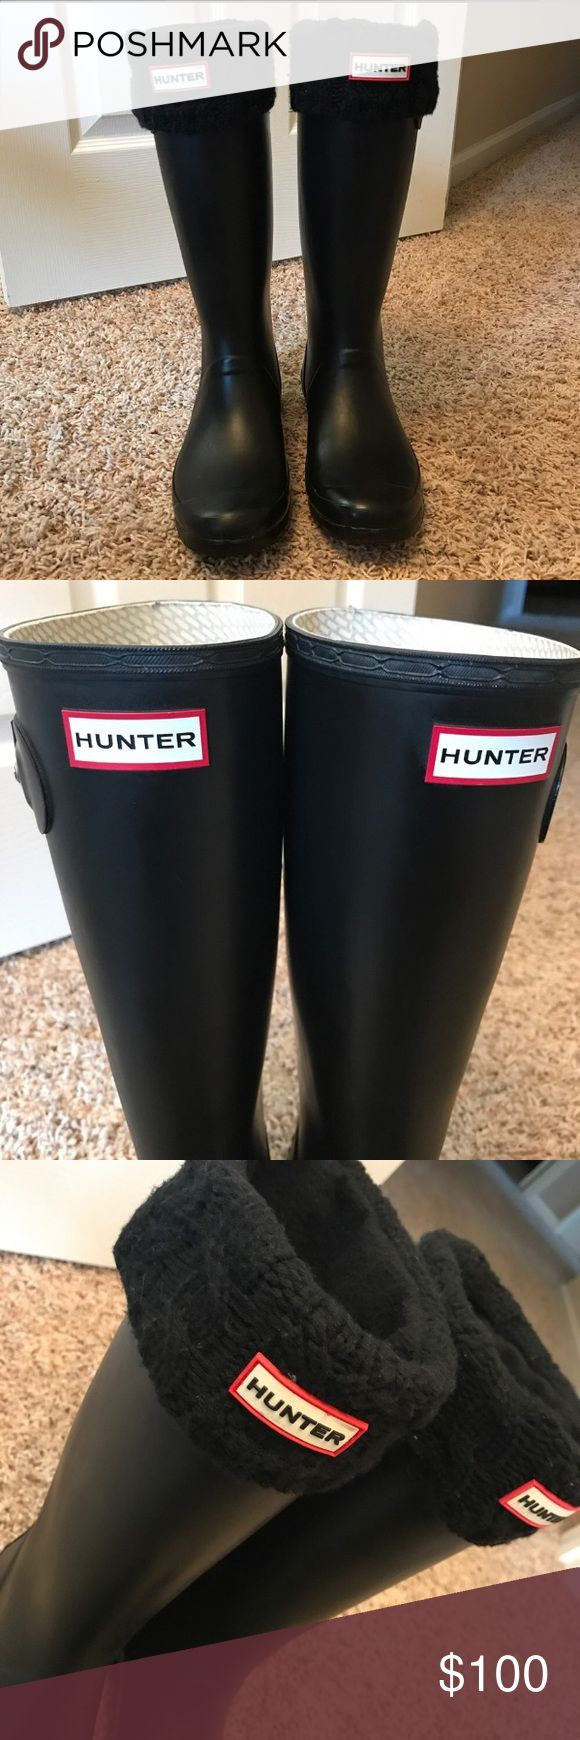 Authentic Hunter Original Tall Rain Boots Women's Original Tall Hunter Rain Boots, price includes one pair of black cardigan-stitch boot socks.  Gently worn, very minor signs of wear.  Occasionally, you may notice a white powdery 'bloom' on Hunter rubber boots. This is because rubber is a natural product and in certain conditions, insoluble particles may rise to the surface.This is a common process, characteristic of high quality, natural rubber and nothing to worry about.  Size: 8M/9F see…